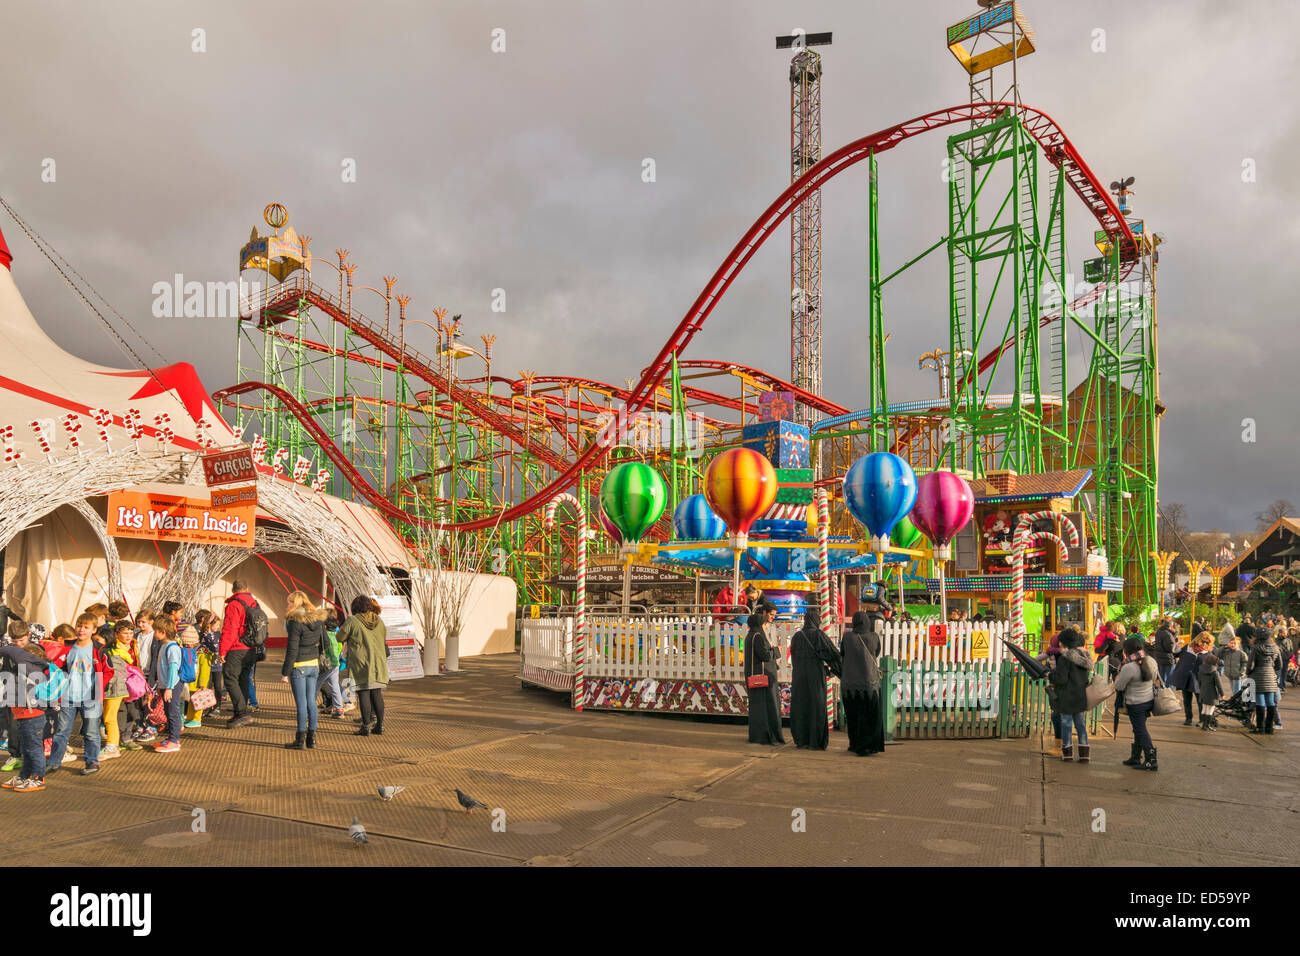 roller coaster stock photos u0026 roller coaster stock images alamy